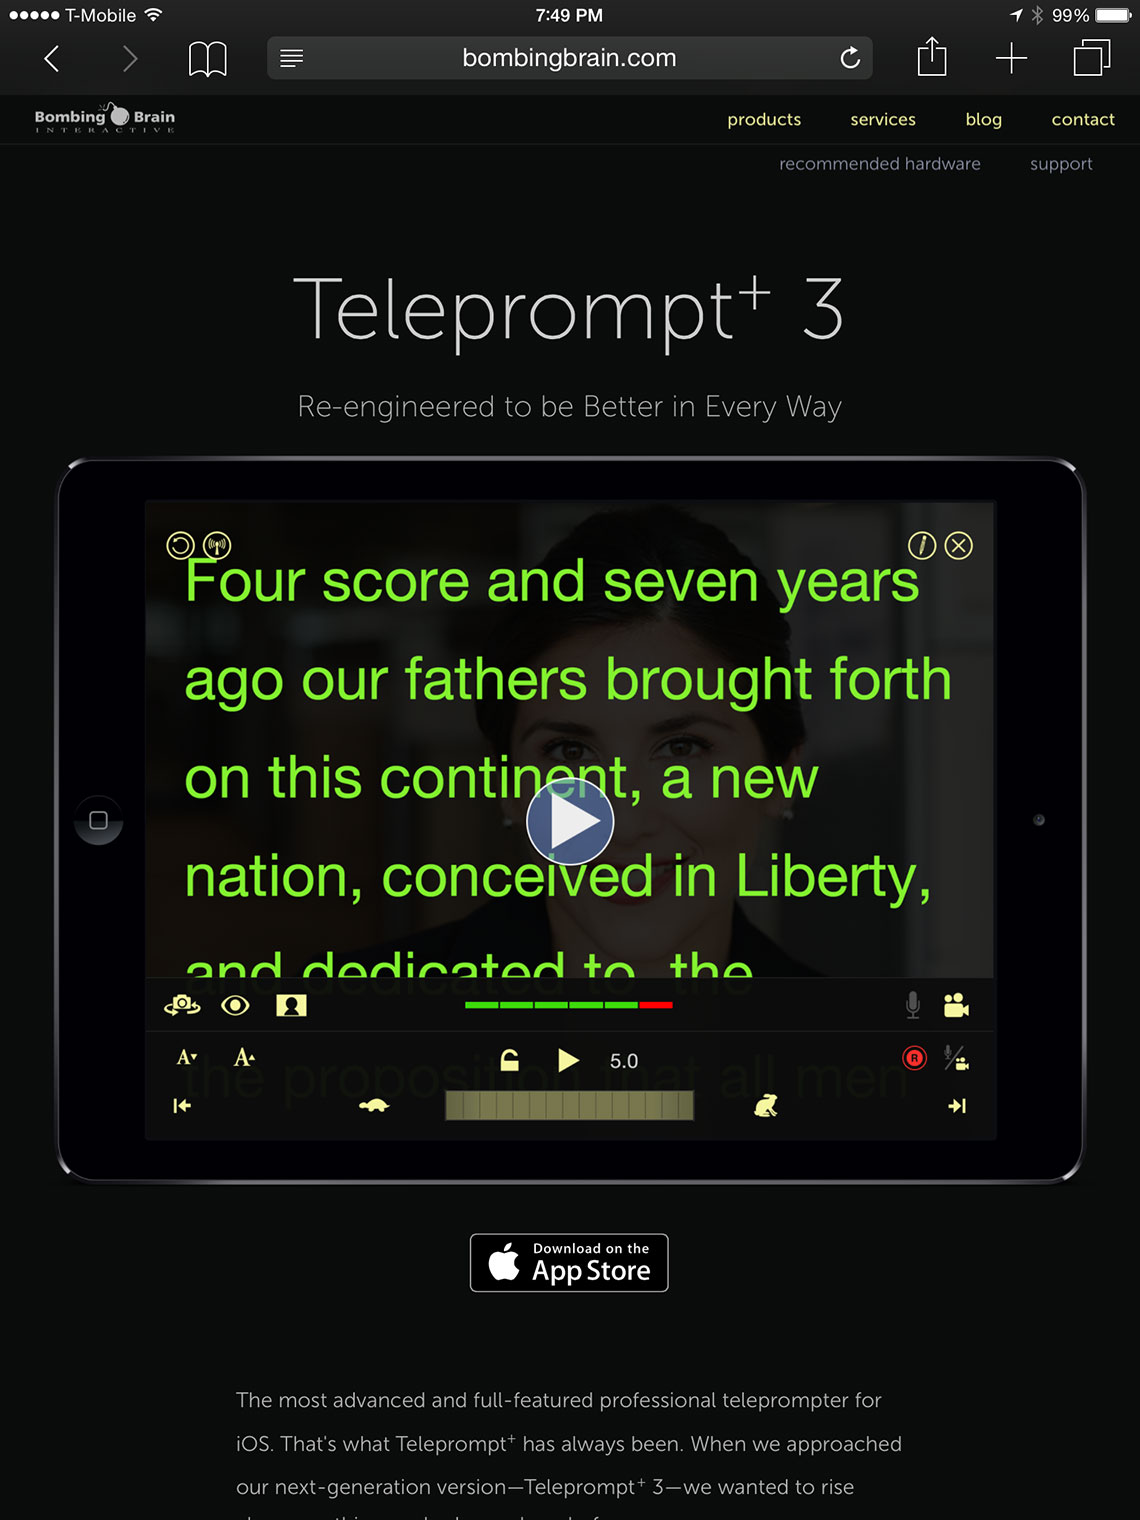 Web site for Teleprompt+